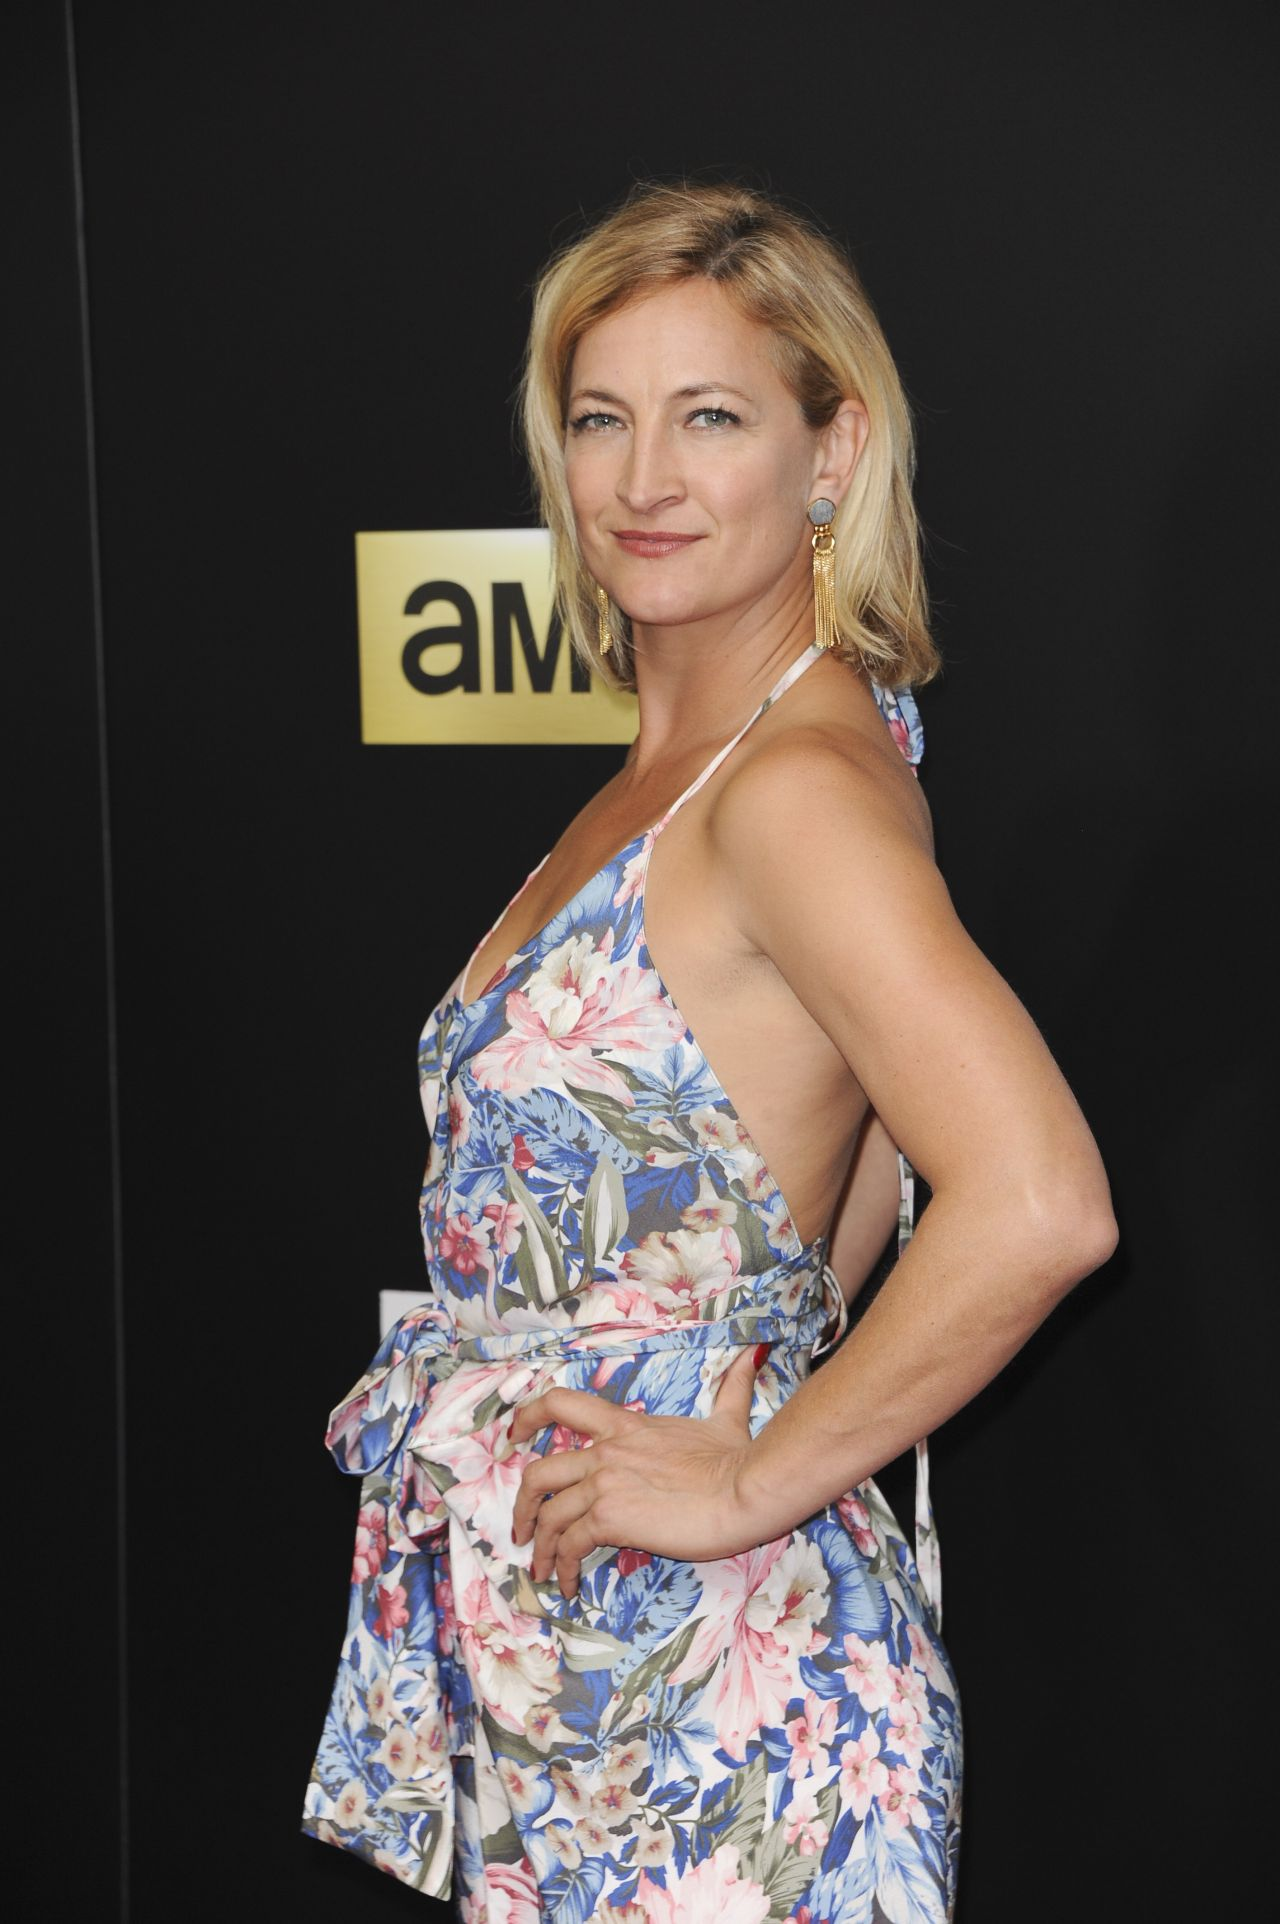 zoe-bell-fear-the-walking-dead-premiere-in-los-angeles-1